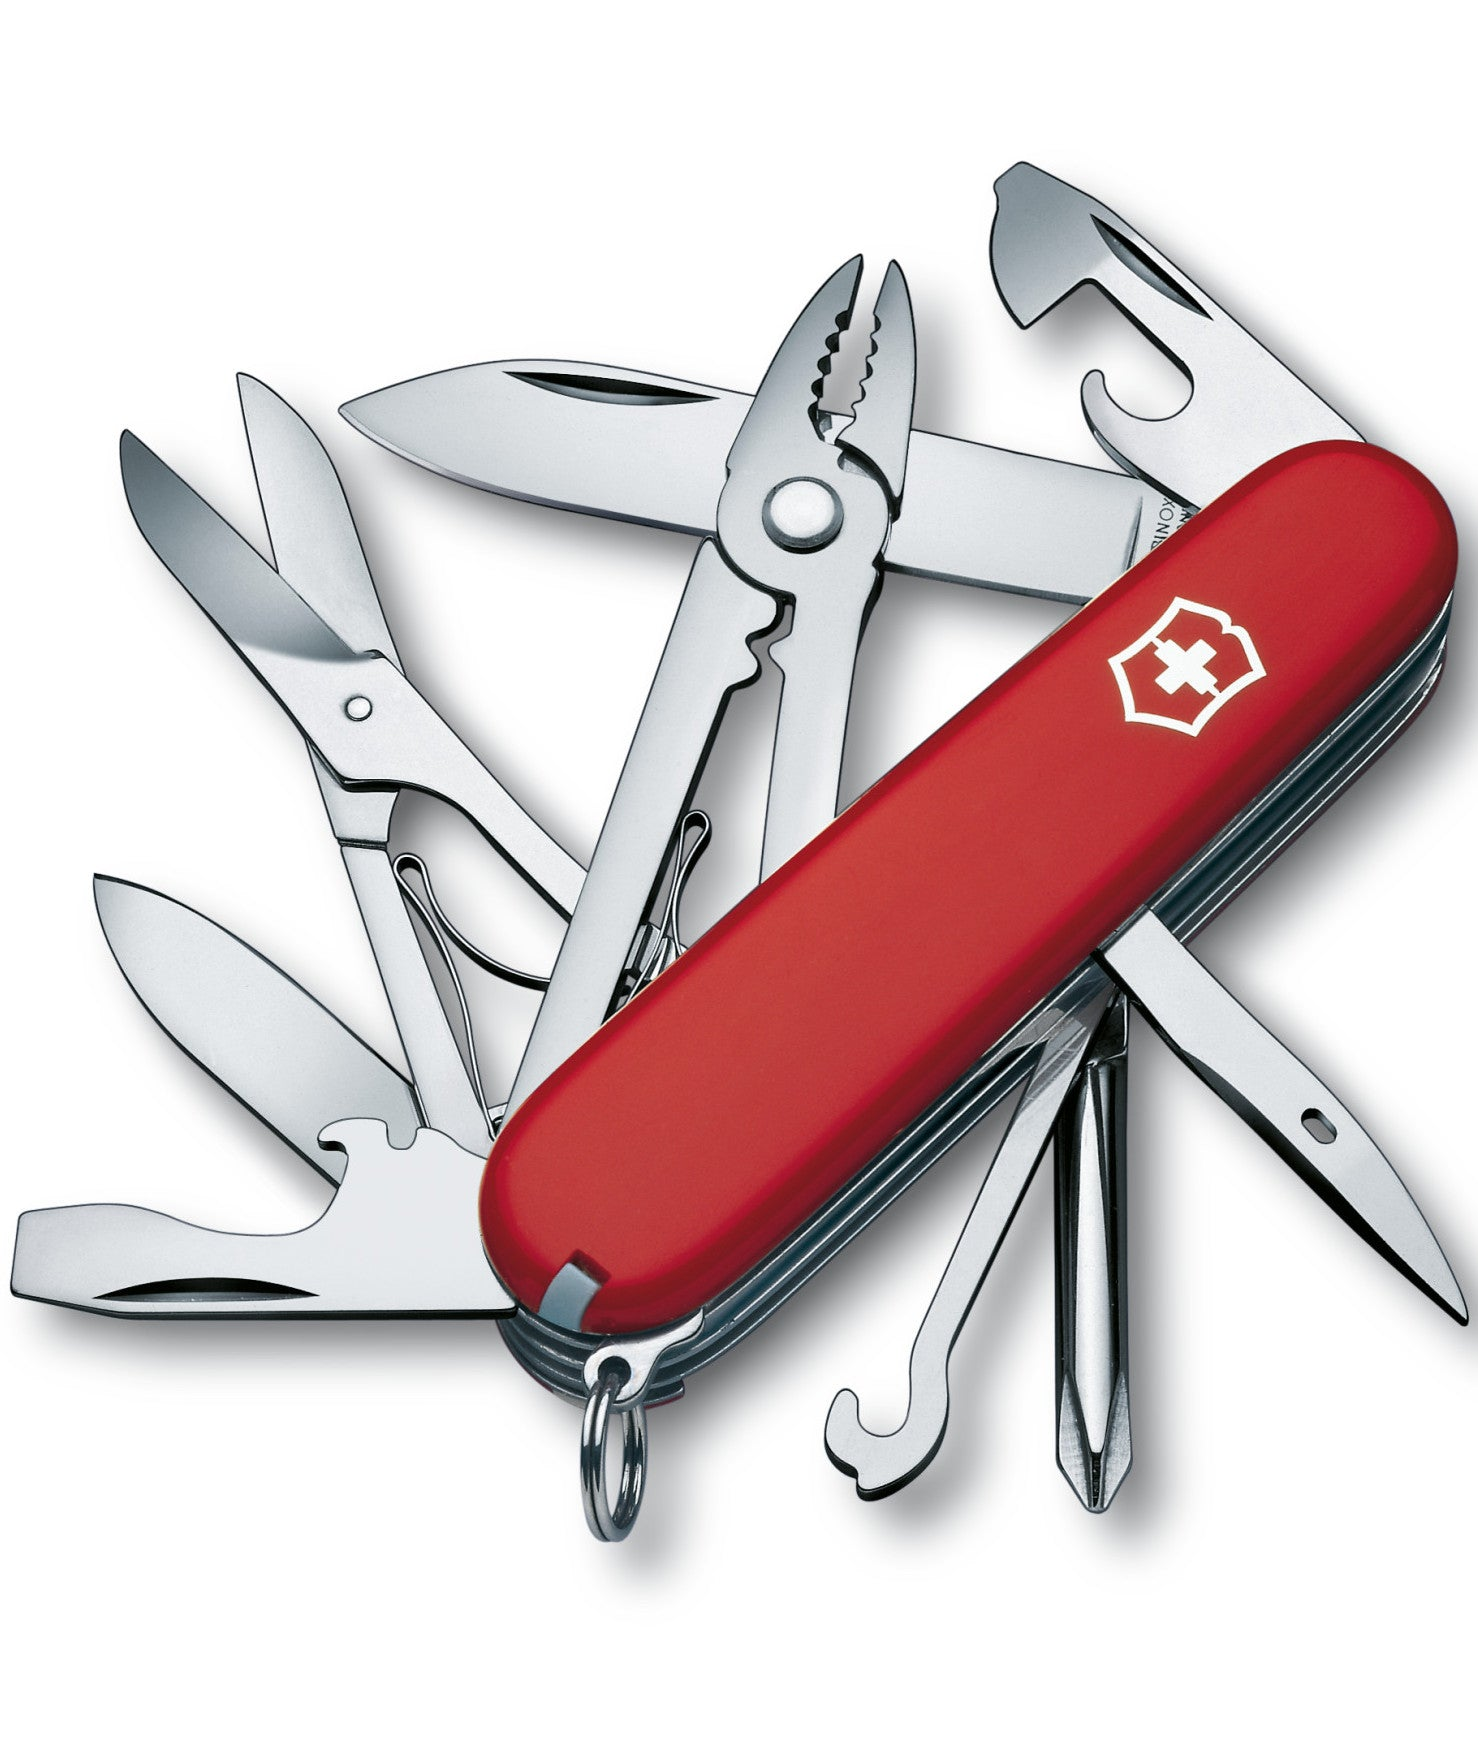 Victorinox Swiss Army Medium Pocket Knife Deluxe Tinker